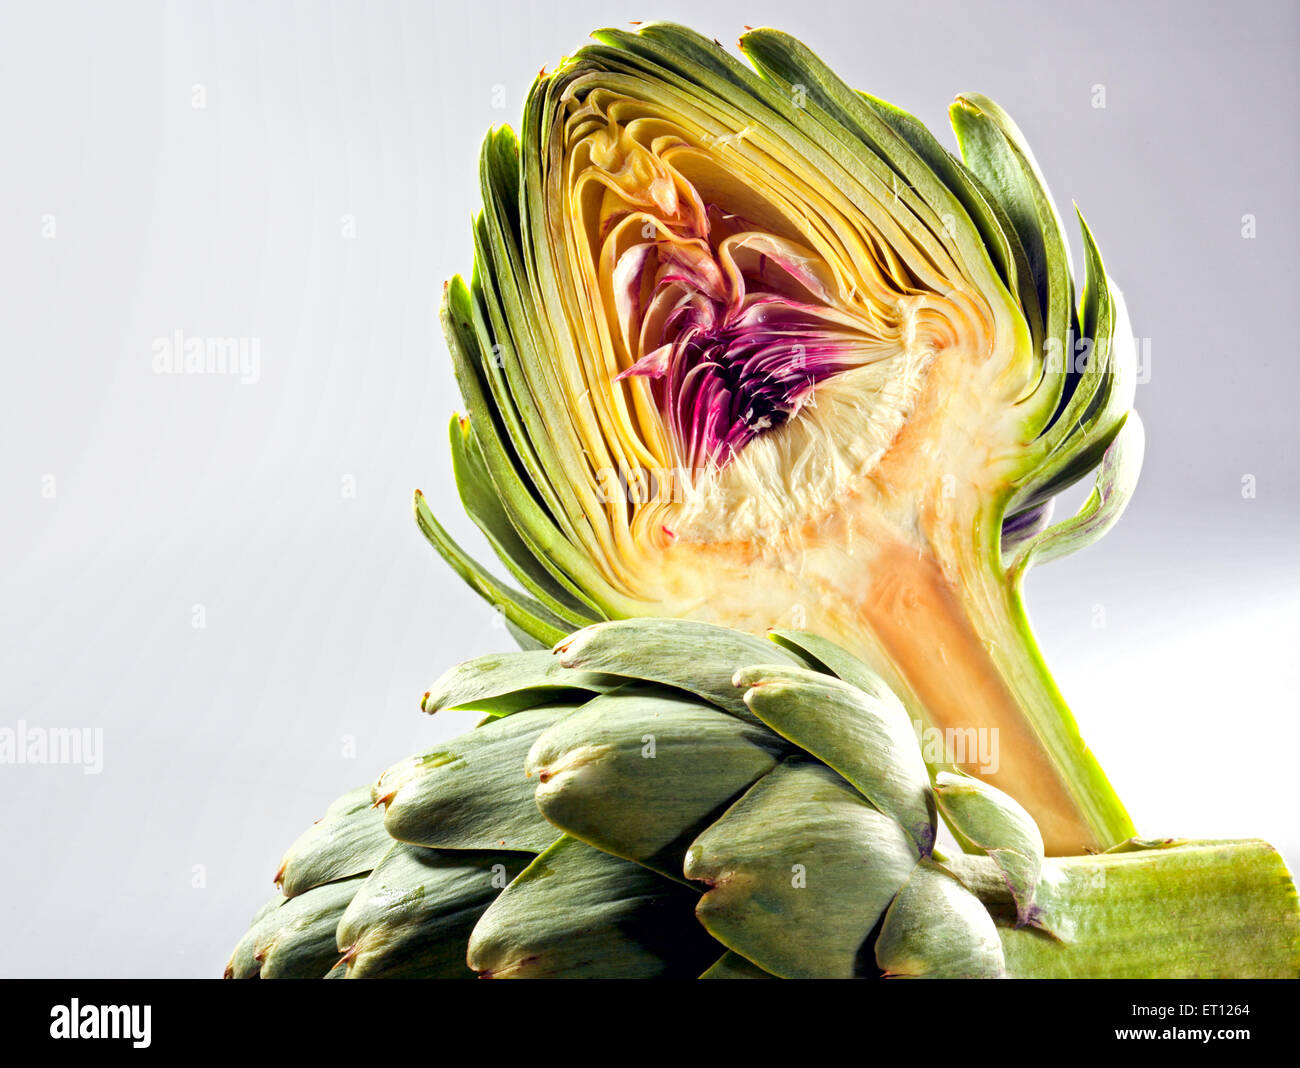 Globe artichoke cut in two, on neutral background. Stock Photo